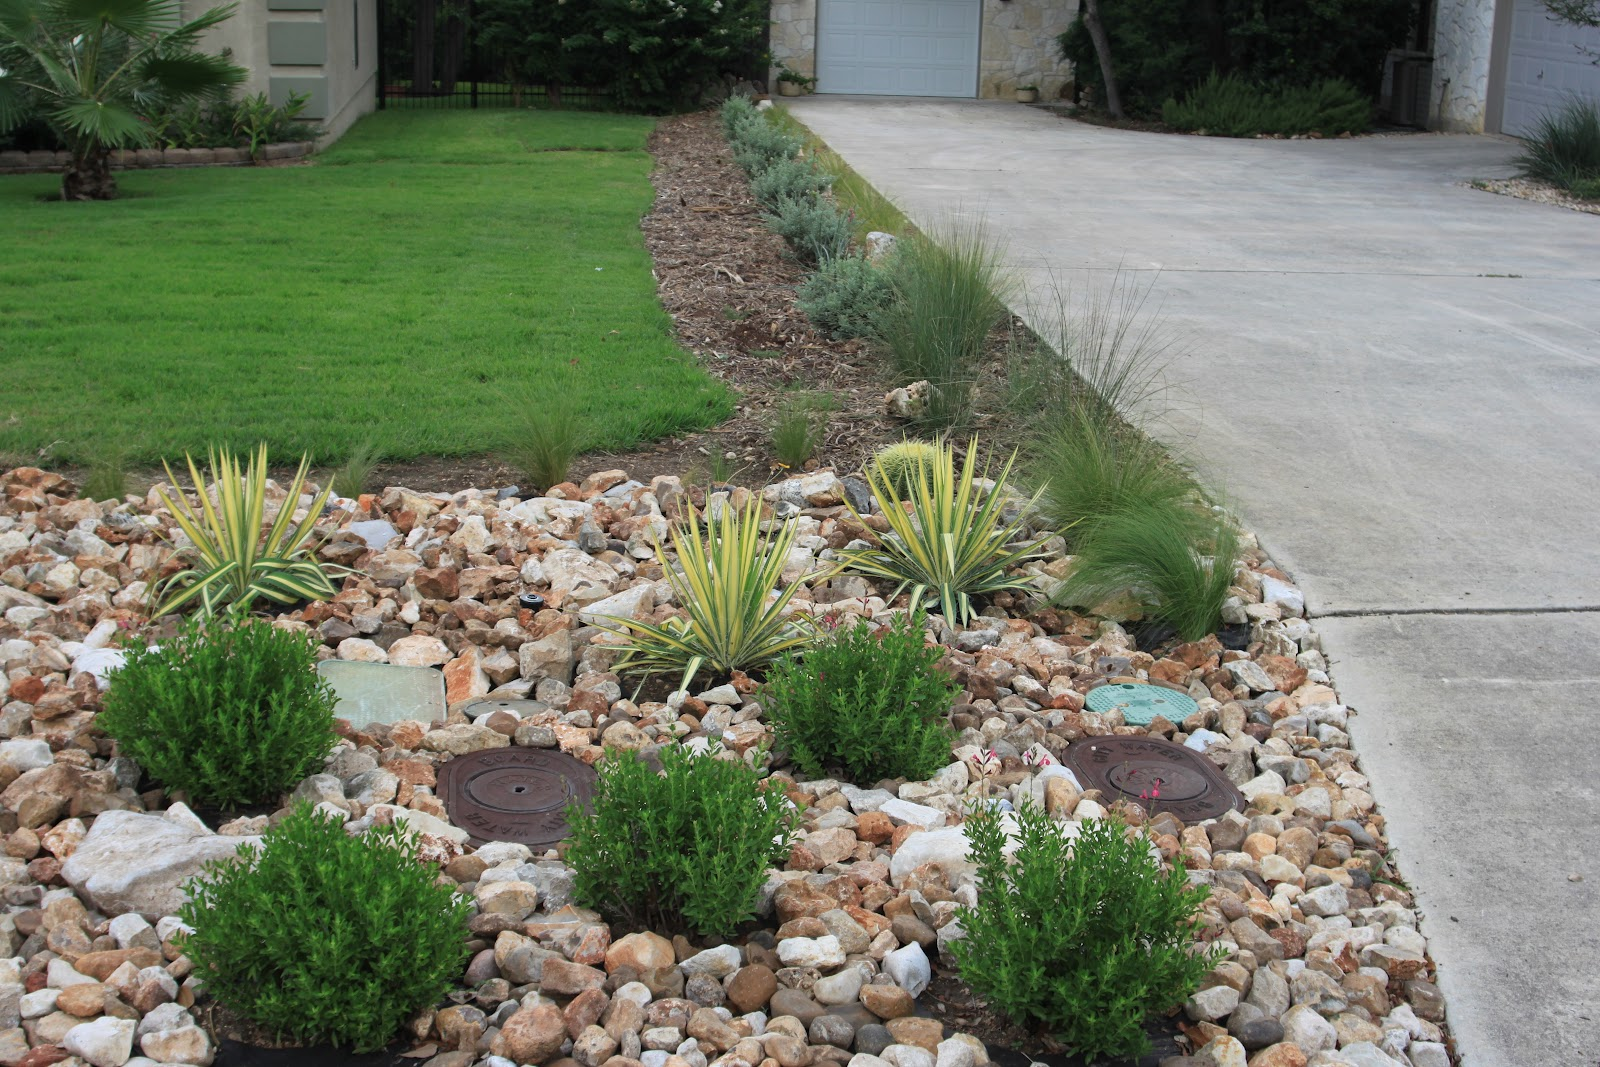 Willing landscape front lawn landscaping ideas using for Grass garden ideas